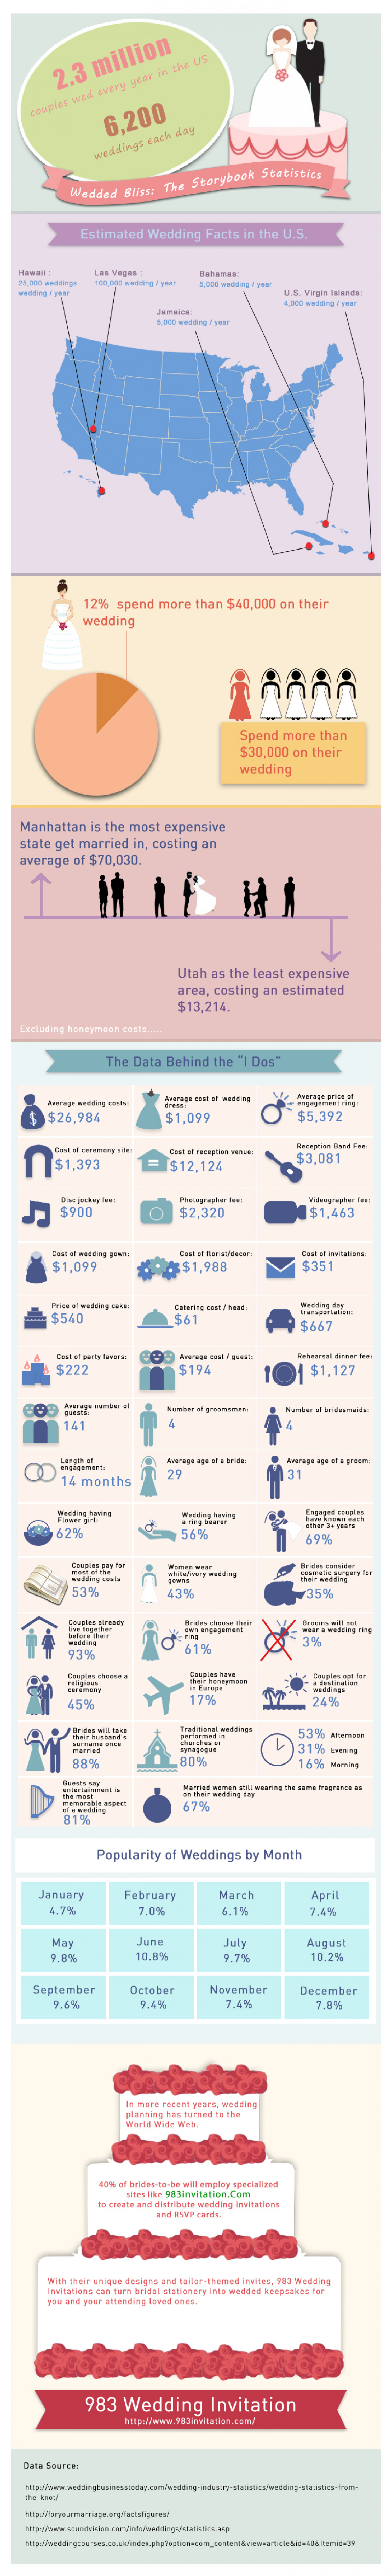 Wedded Bliss: The Storybook Statistics Infographic